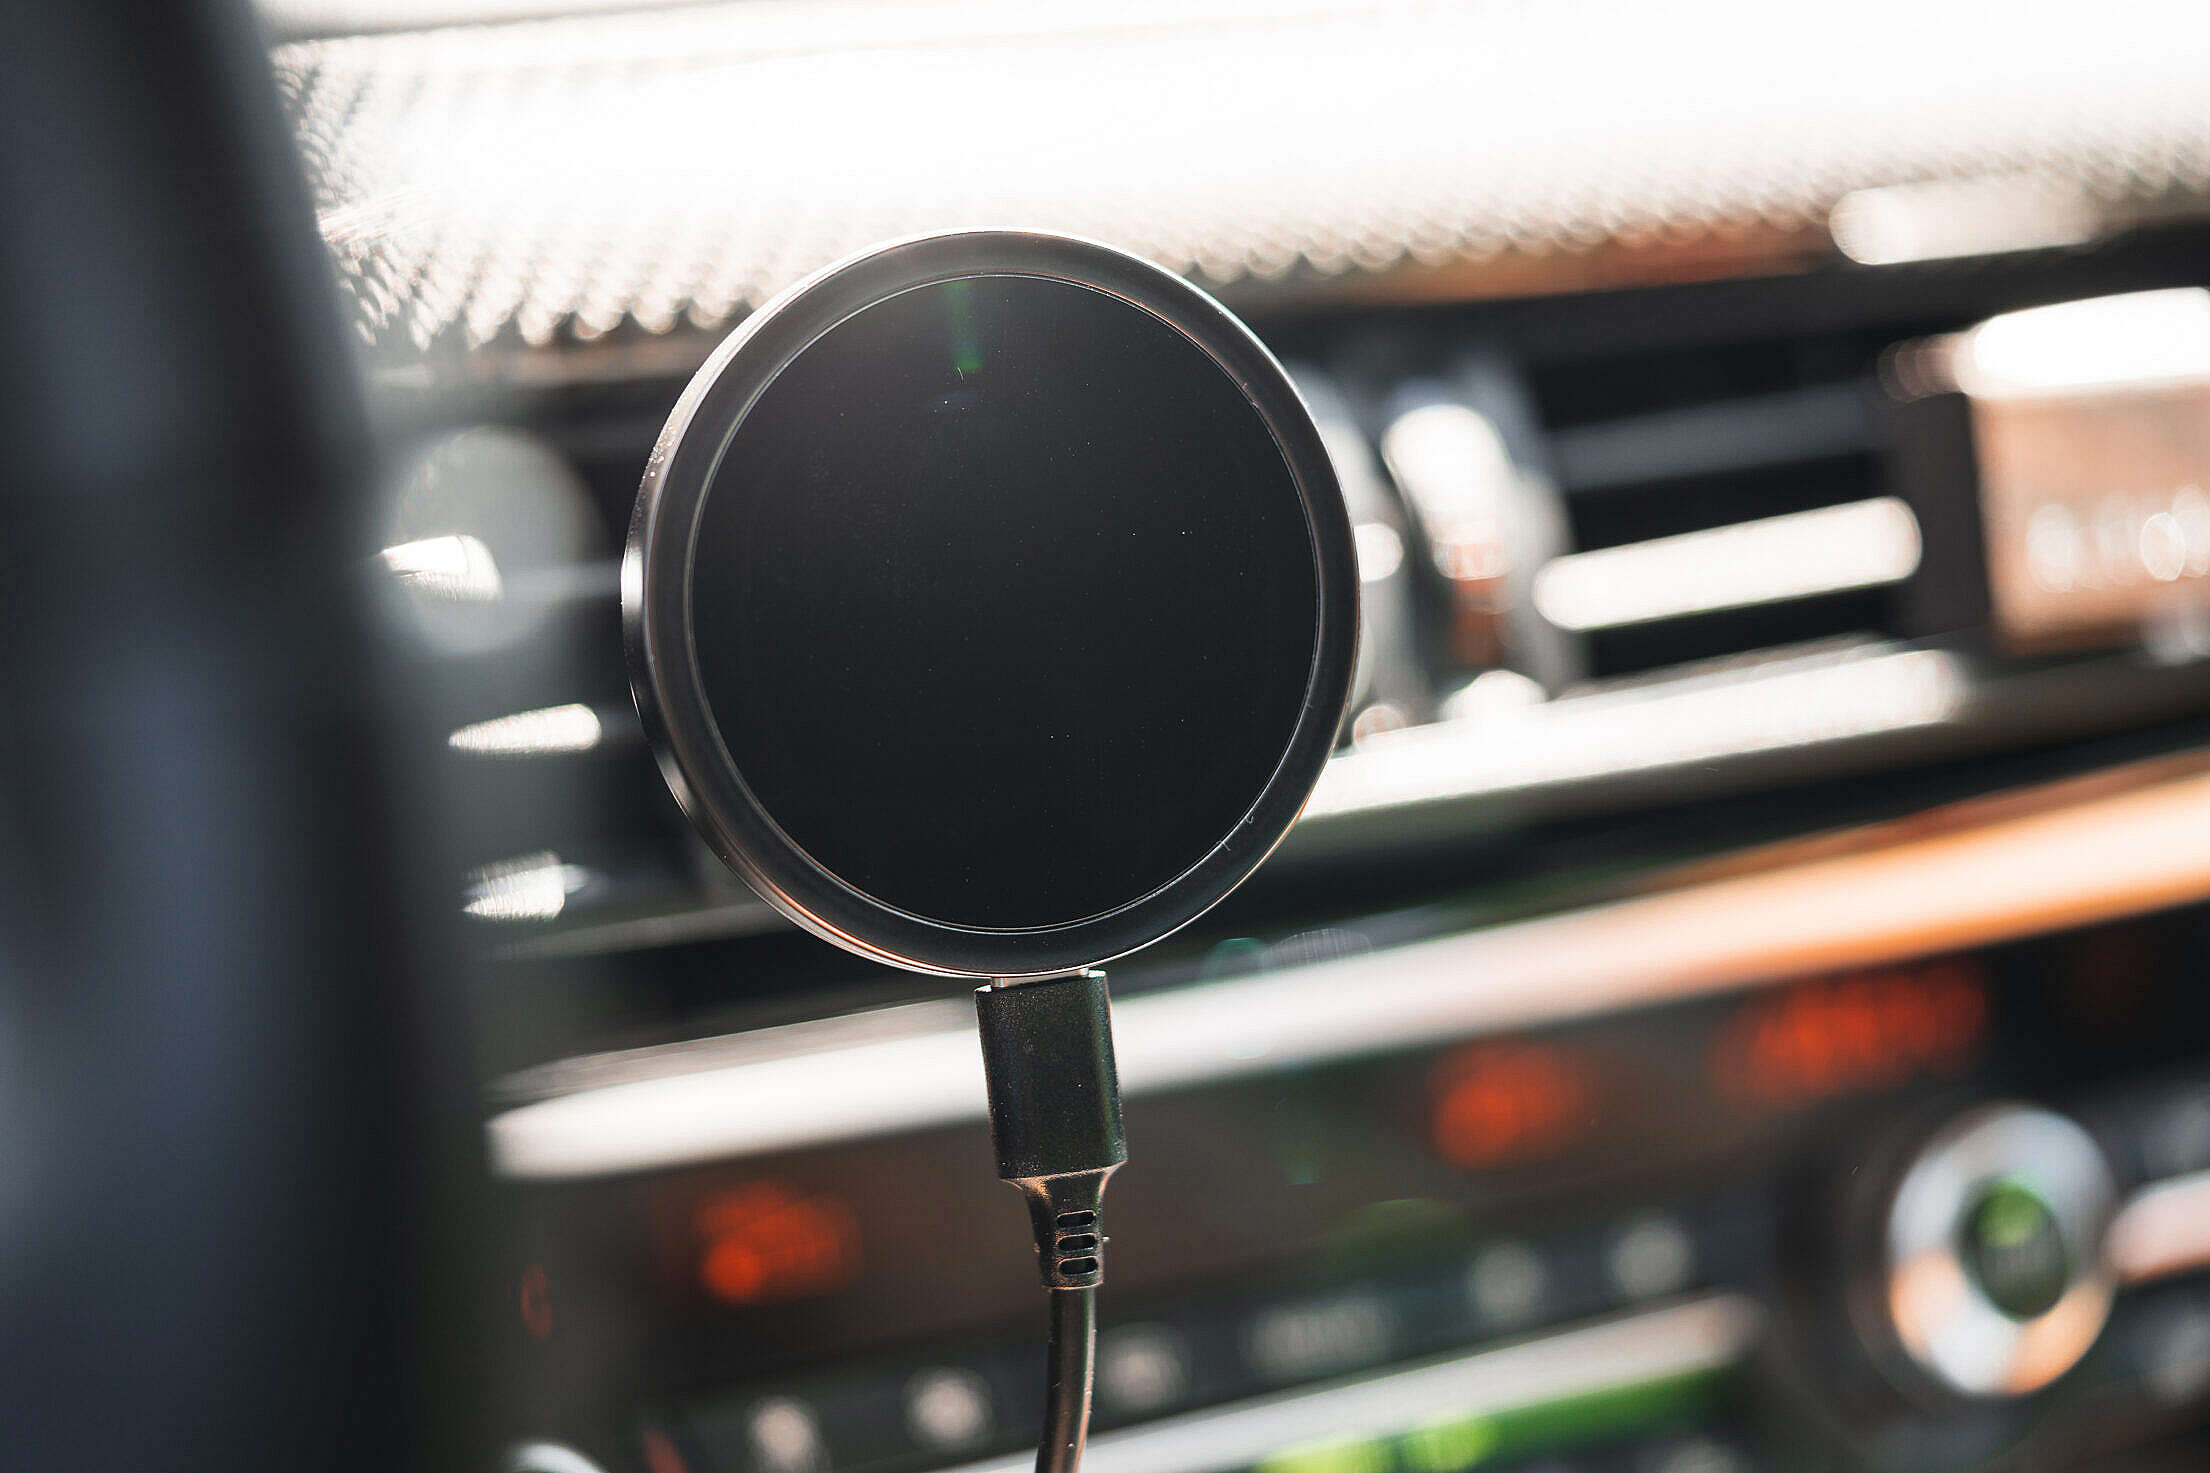 MagSafe Car Charger for iPhone Free Stock Photo